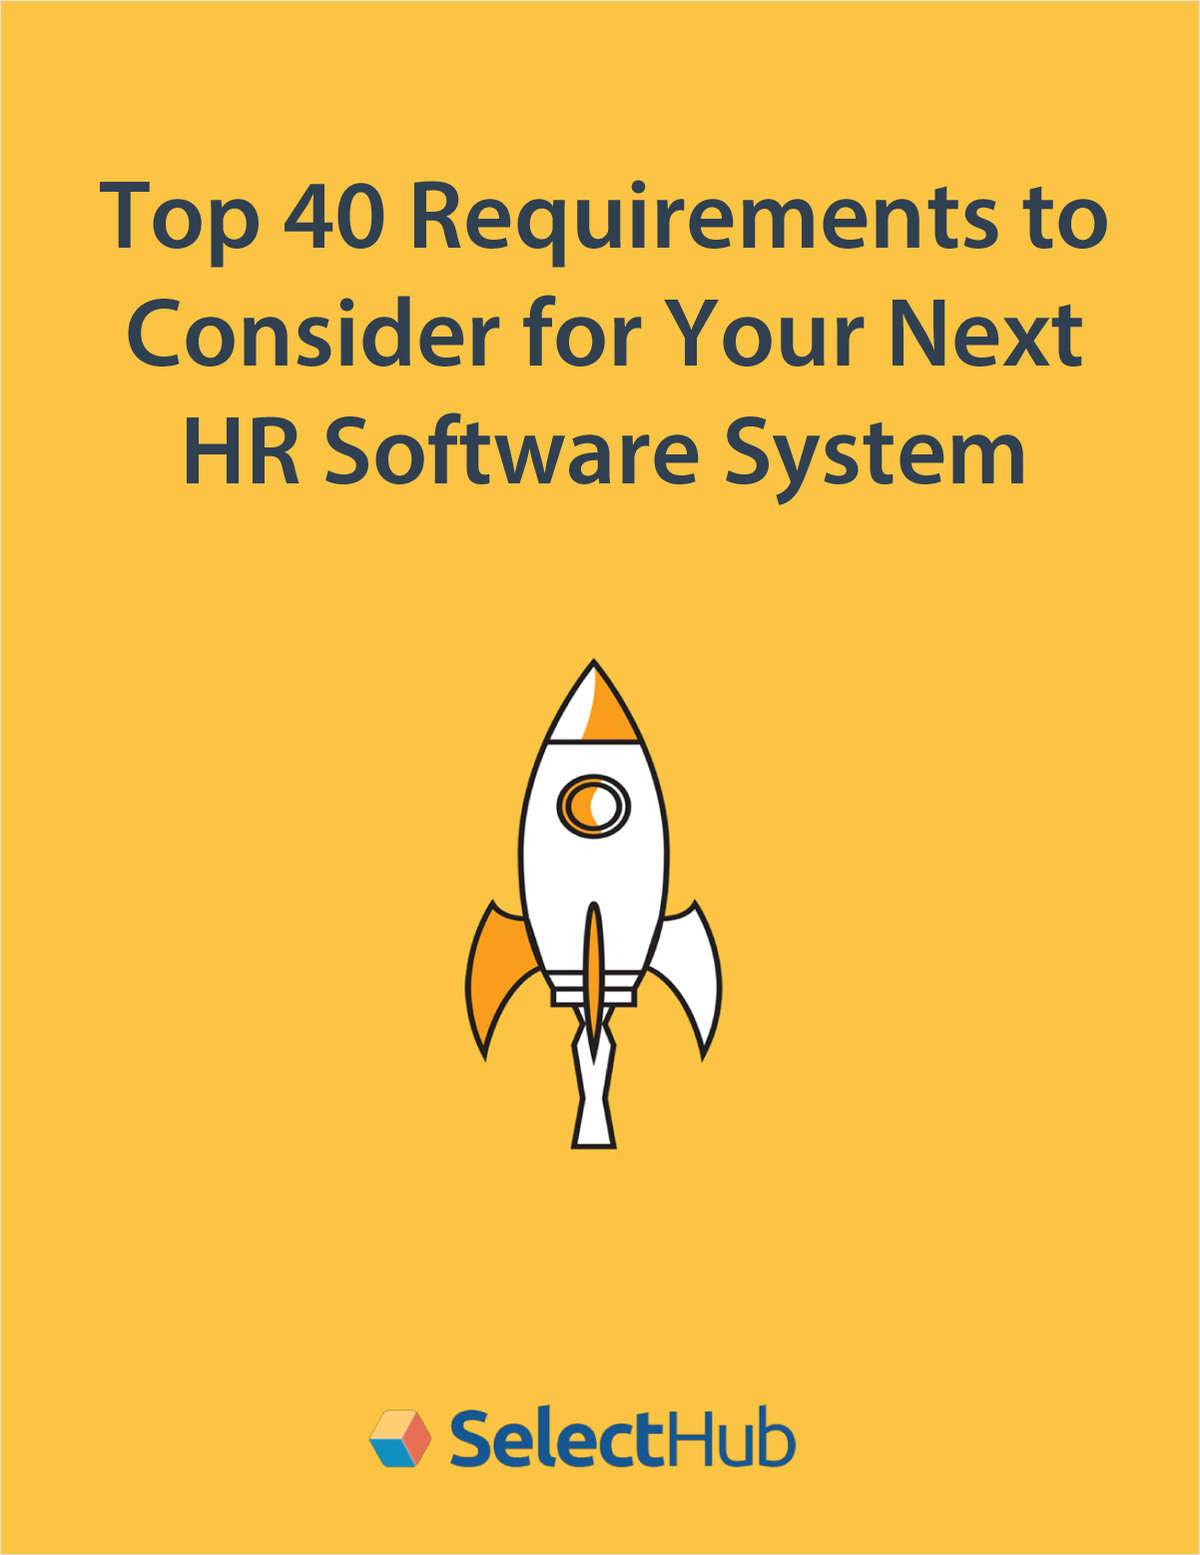 Top 40 Requirements to Consider for Your Next Human Resource (HR) Software System